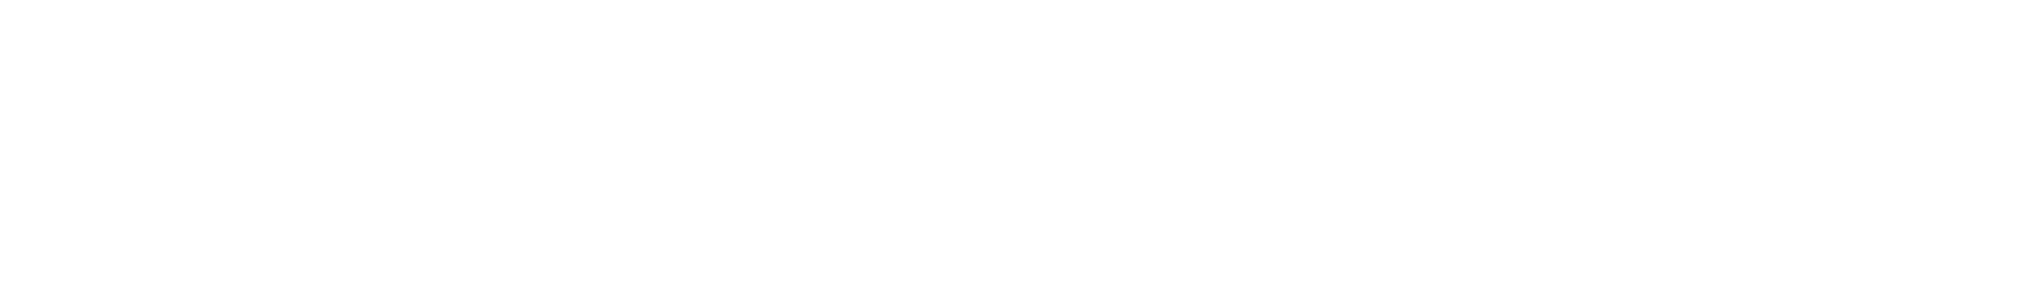 canada_council_for_the_arts_reverse.png